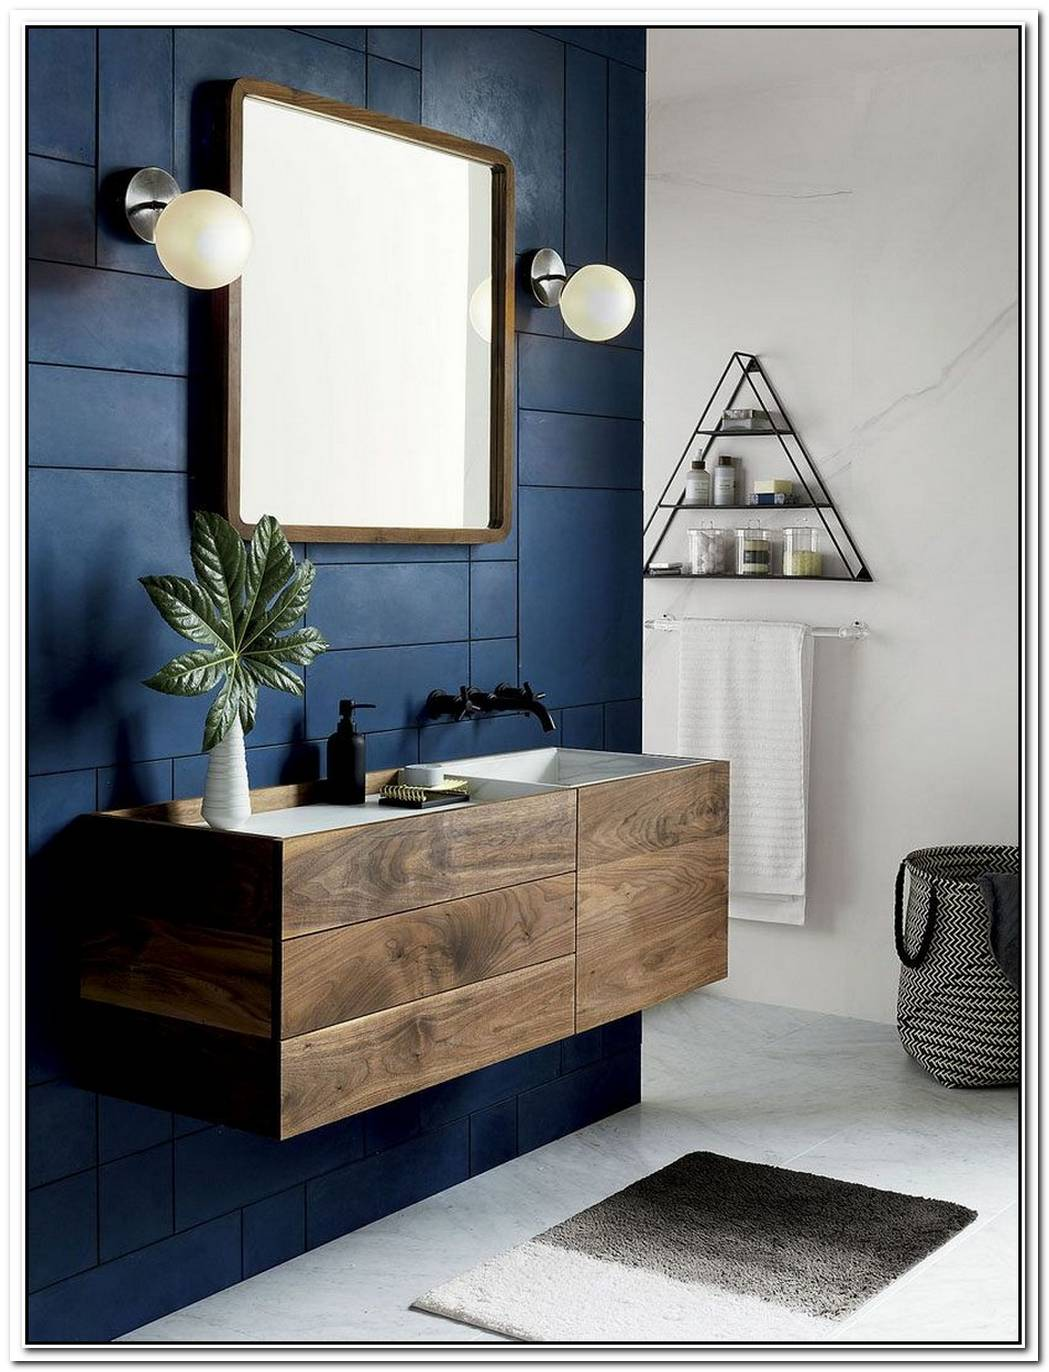 Clean Lines And Rich Hues Create A Striking Contemporary Bathroom